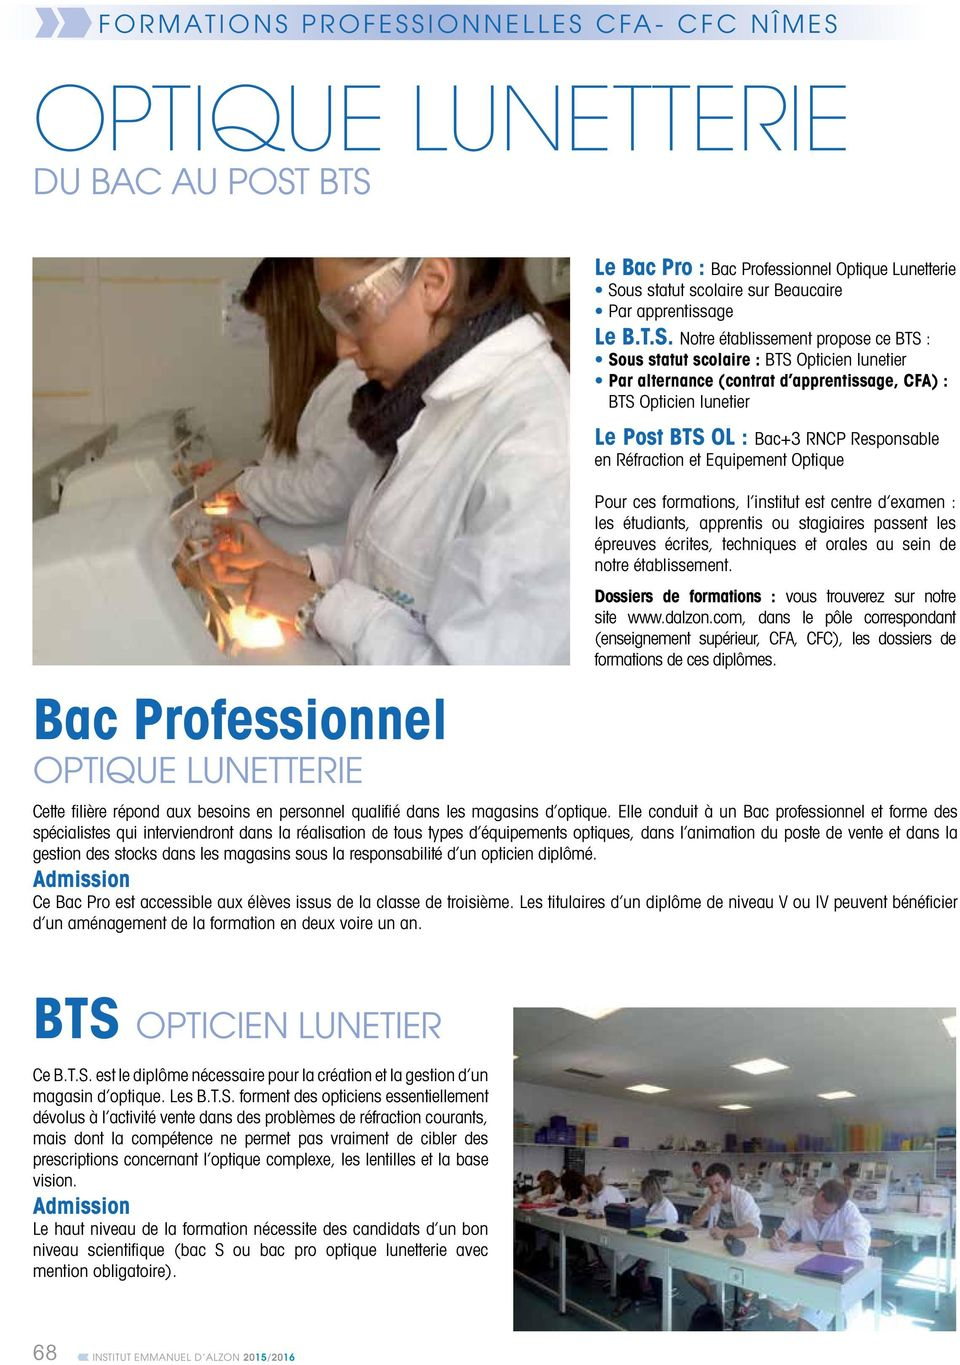 Notre établissement propose ce BTS : Sous statut scolaire : BTS Opticien lunetier Par alternance (contrat d apprentissage, CFA) : BTS Opticien lunetier Le Post BTS OL : Bac+3 RNCP Responsable en